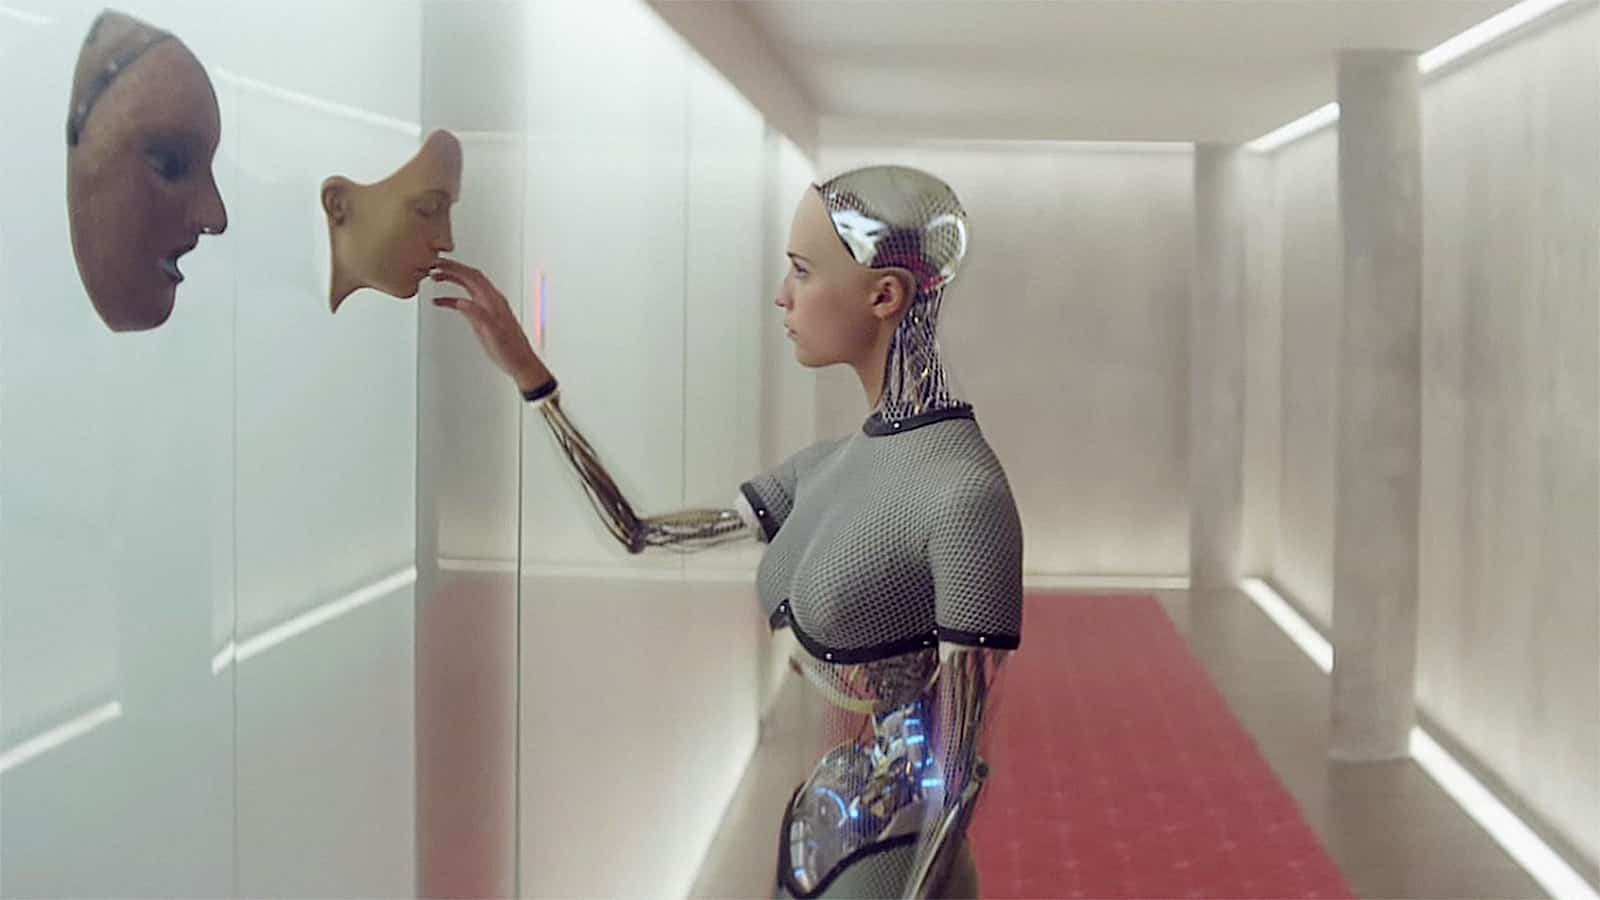 Deep Focus Shot - Best Camera Movement and Camera Angles - Ex Machina